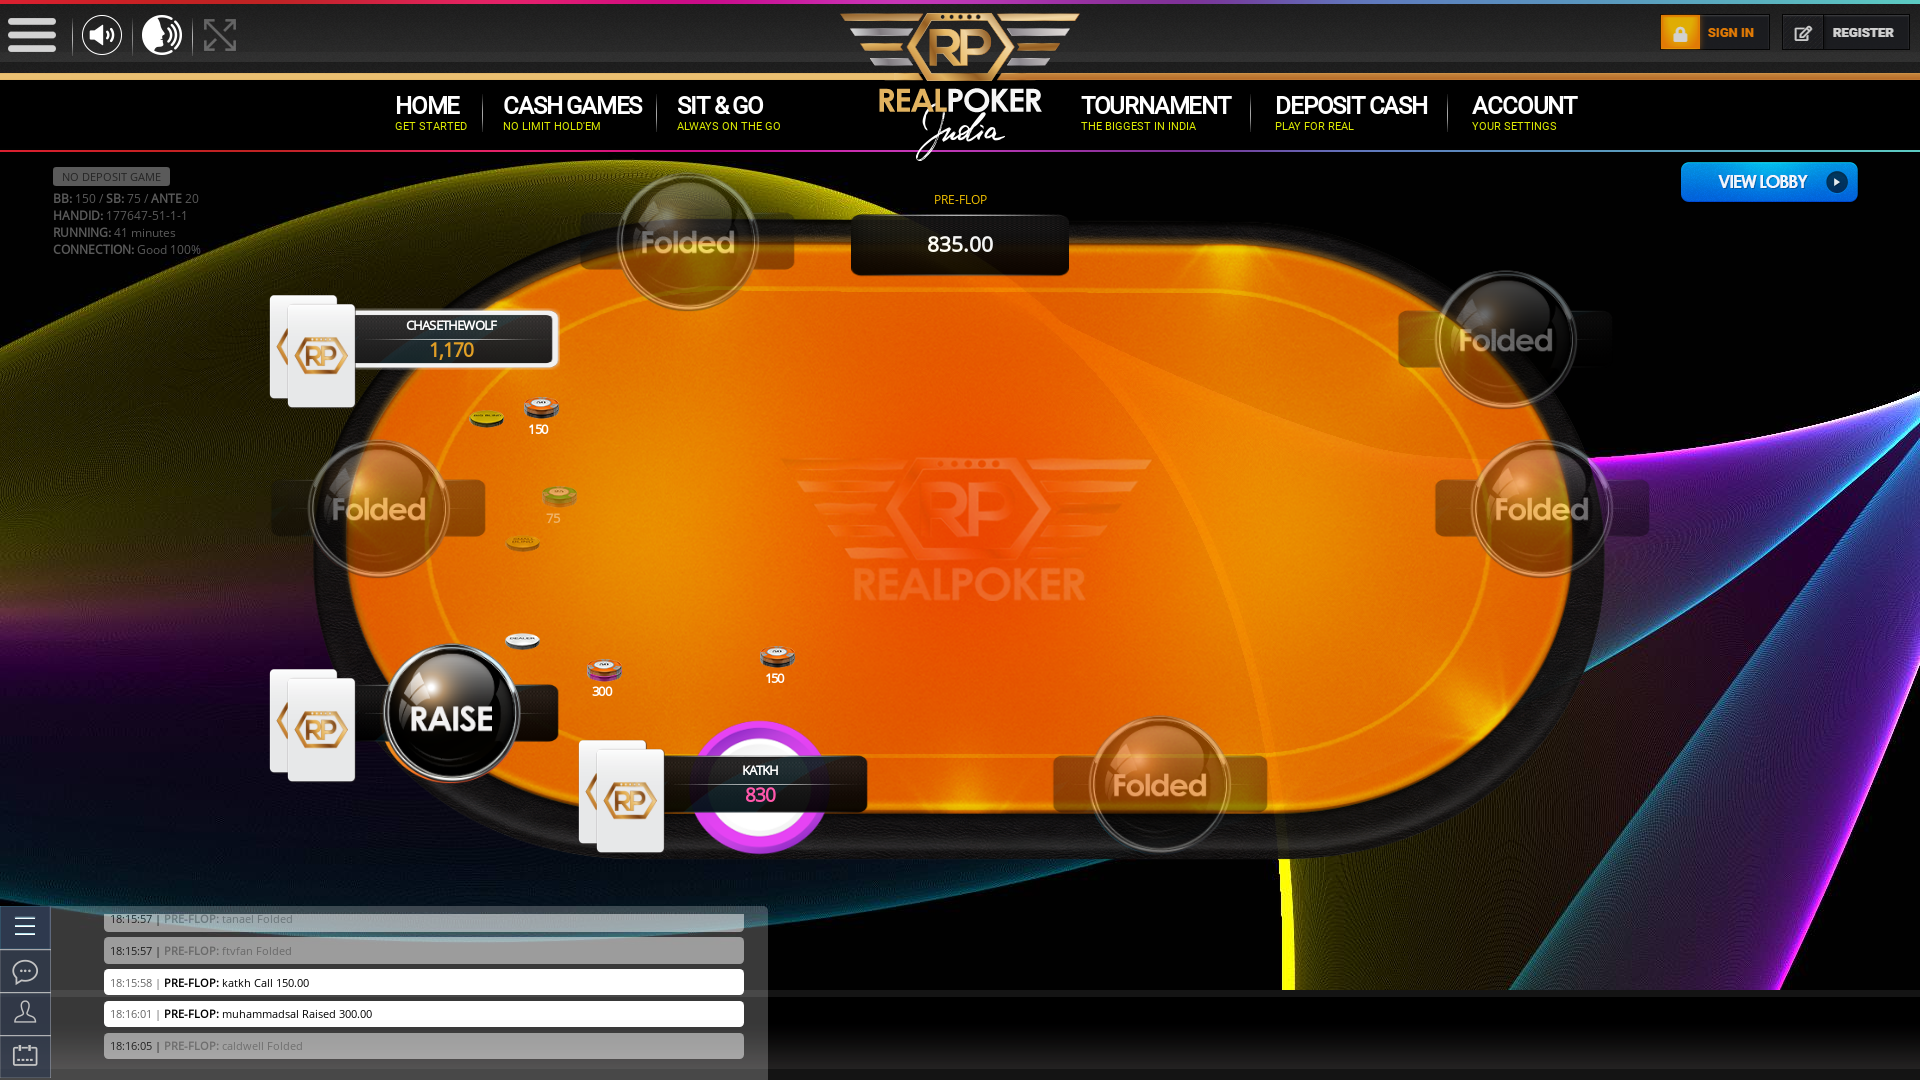 Indian online poker on a 10 player table in the 41st minute match up